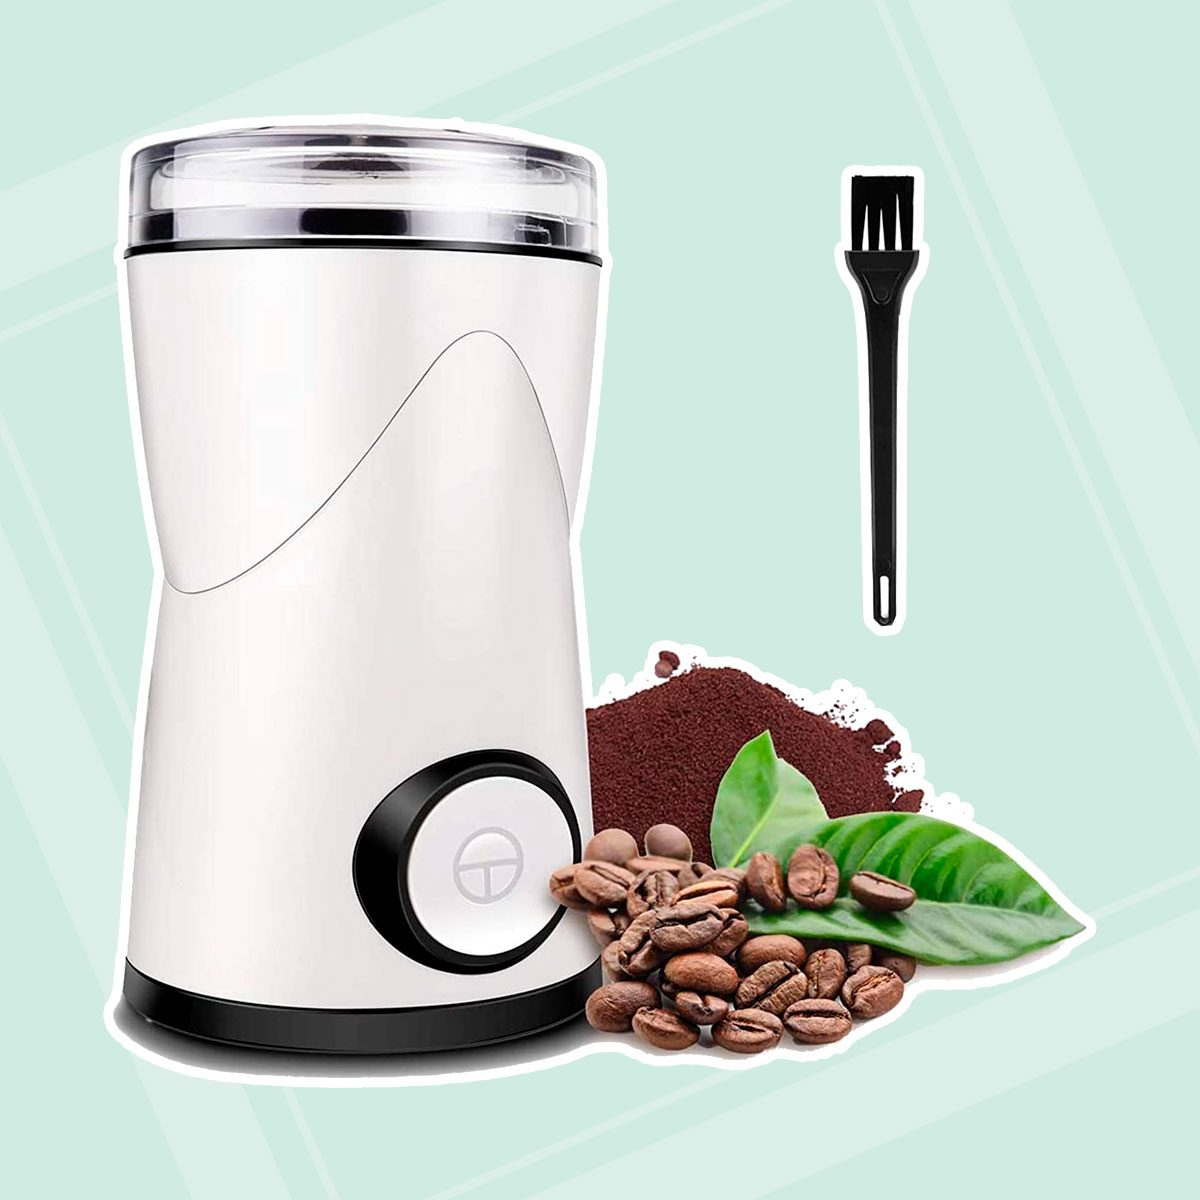 Coffee Grinder, Keenstone Electric Coffee Bean Grinder Mill Grinder with Noiseless Motor One Touch Design Home and Office Portable Use, Also for Spices,...